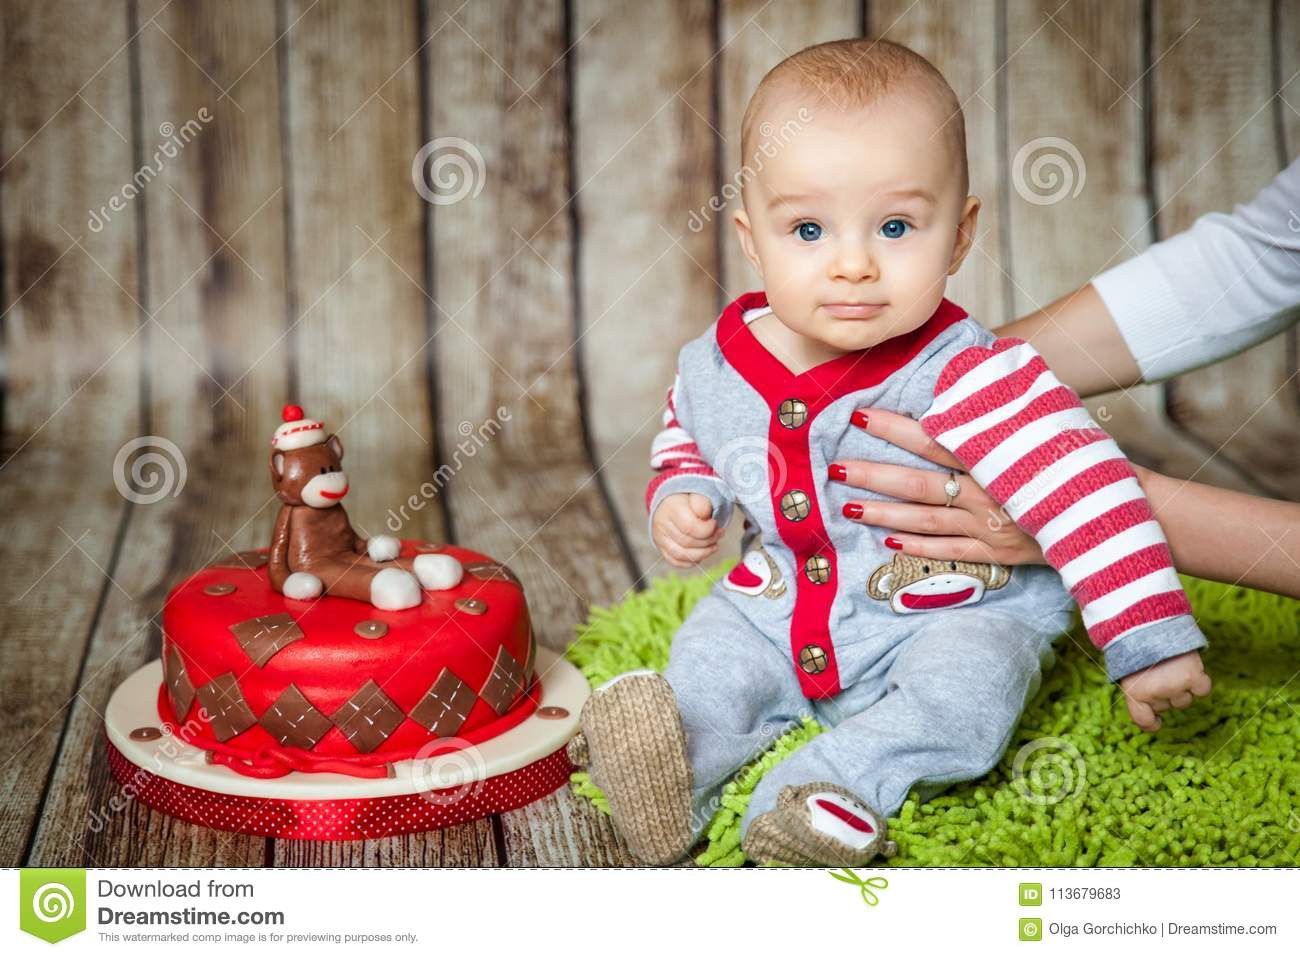 Mini Birthday With Sock Monkey Theme Cute 6 Months Baby Boy In A Costume Sweet Party Cake